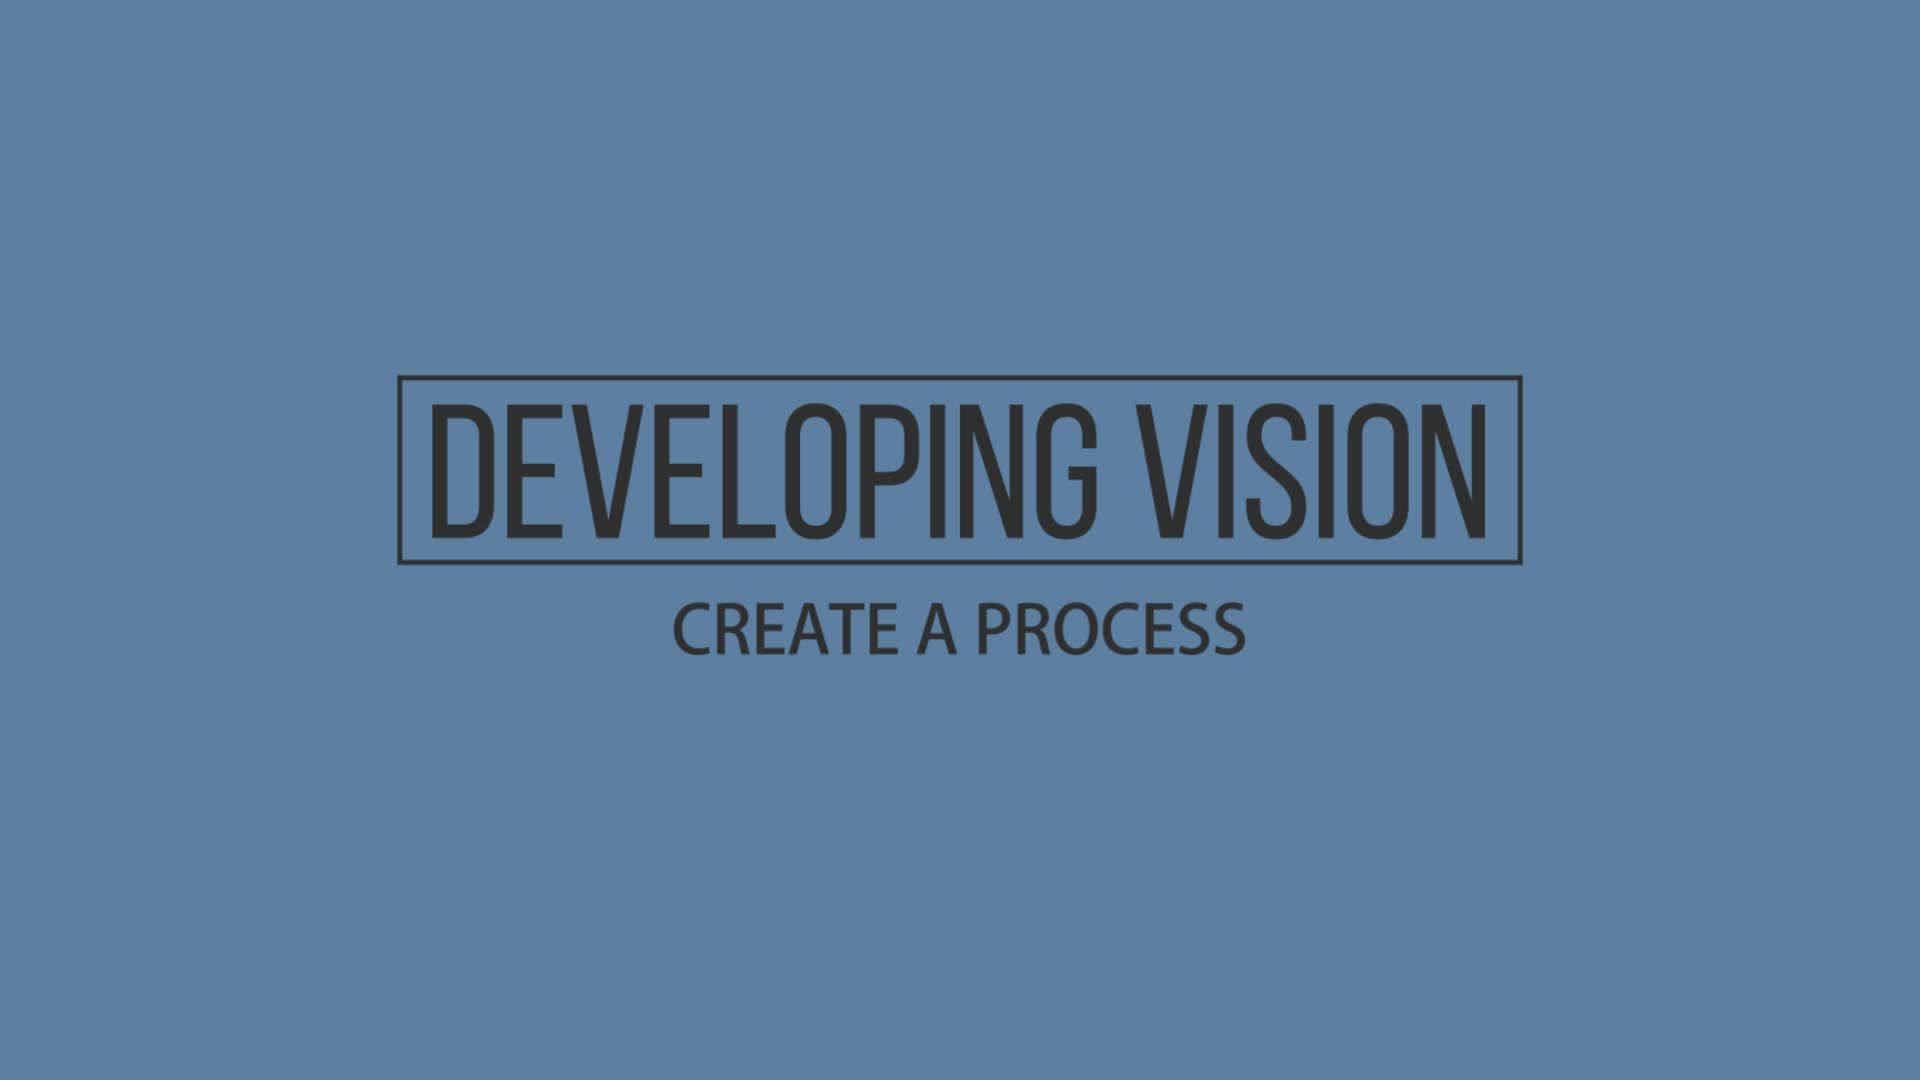 Developing Vision - Create a Process